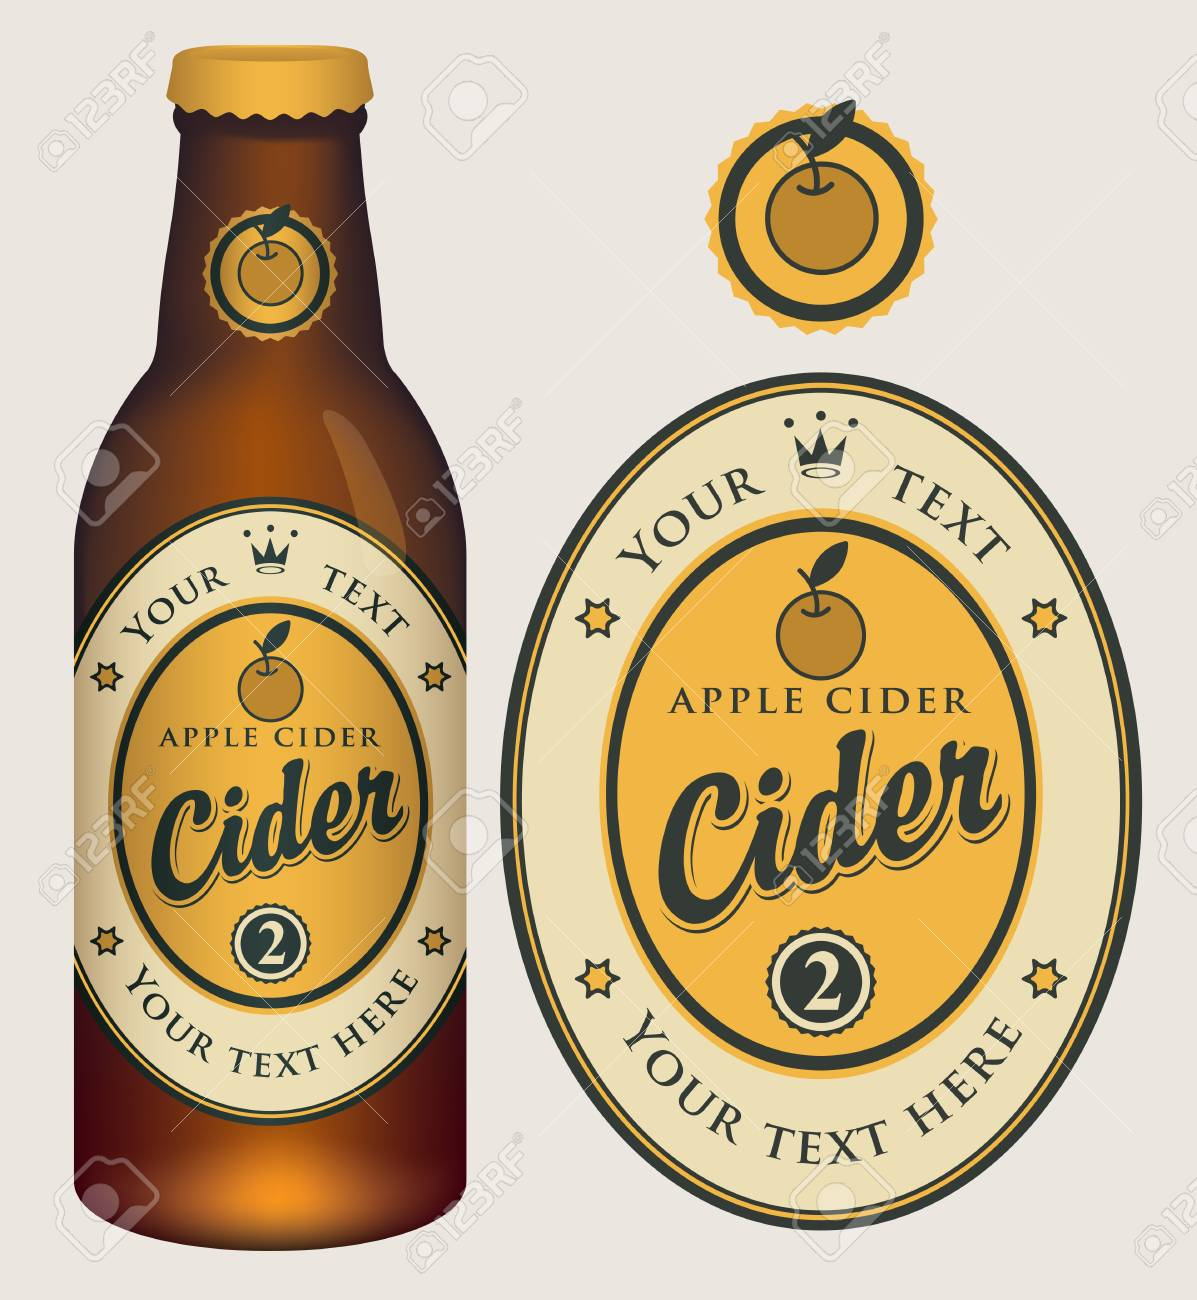 Vector Label For Apple Cider With Crown And Inscription In Oval